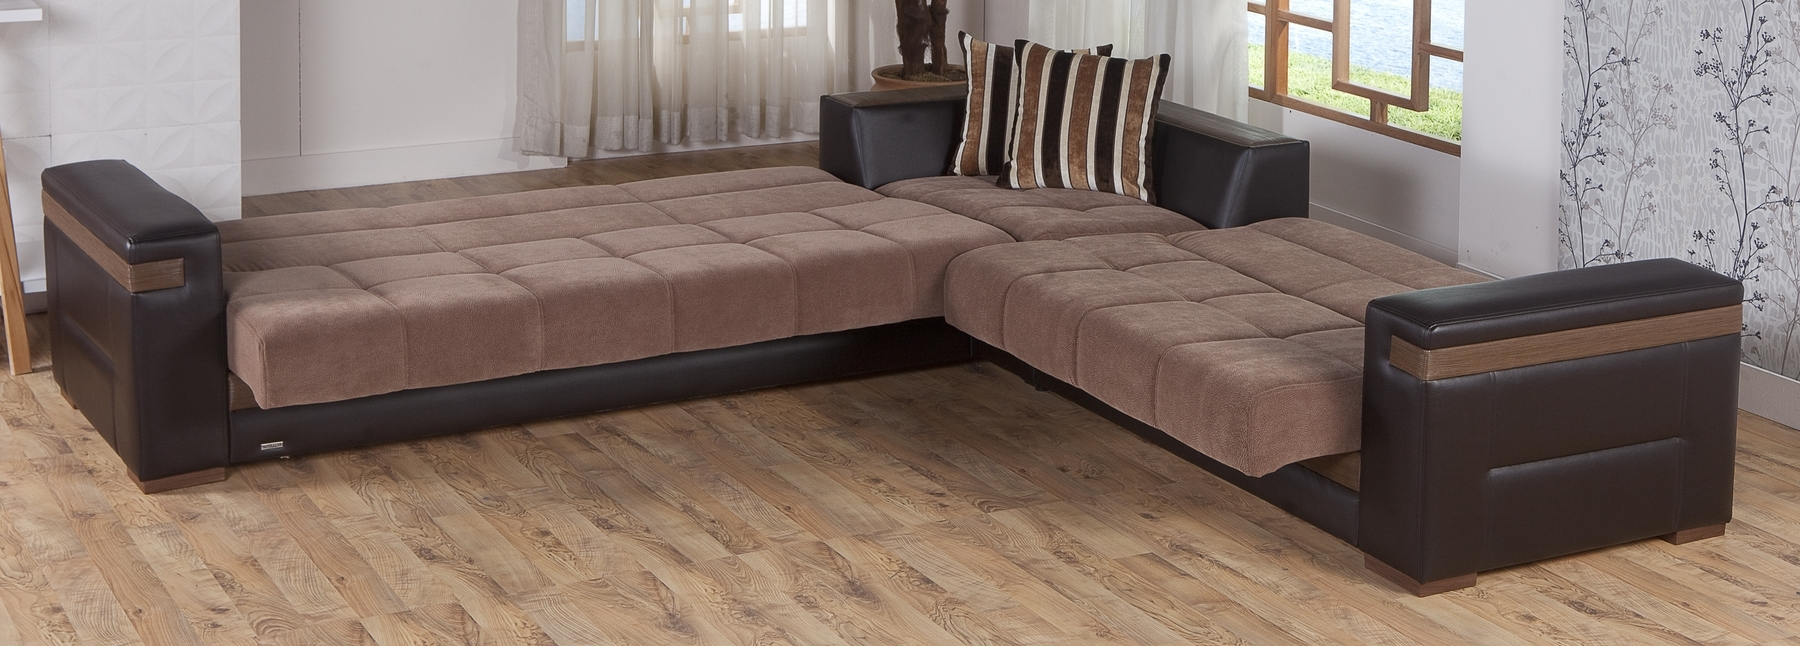 Sectional Sofas In Stock For Latest Moon Troy Brown Sectional Sofa Moon Sunset Furniture Sectional (View 10 of 15)